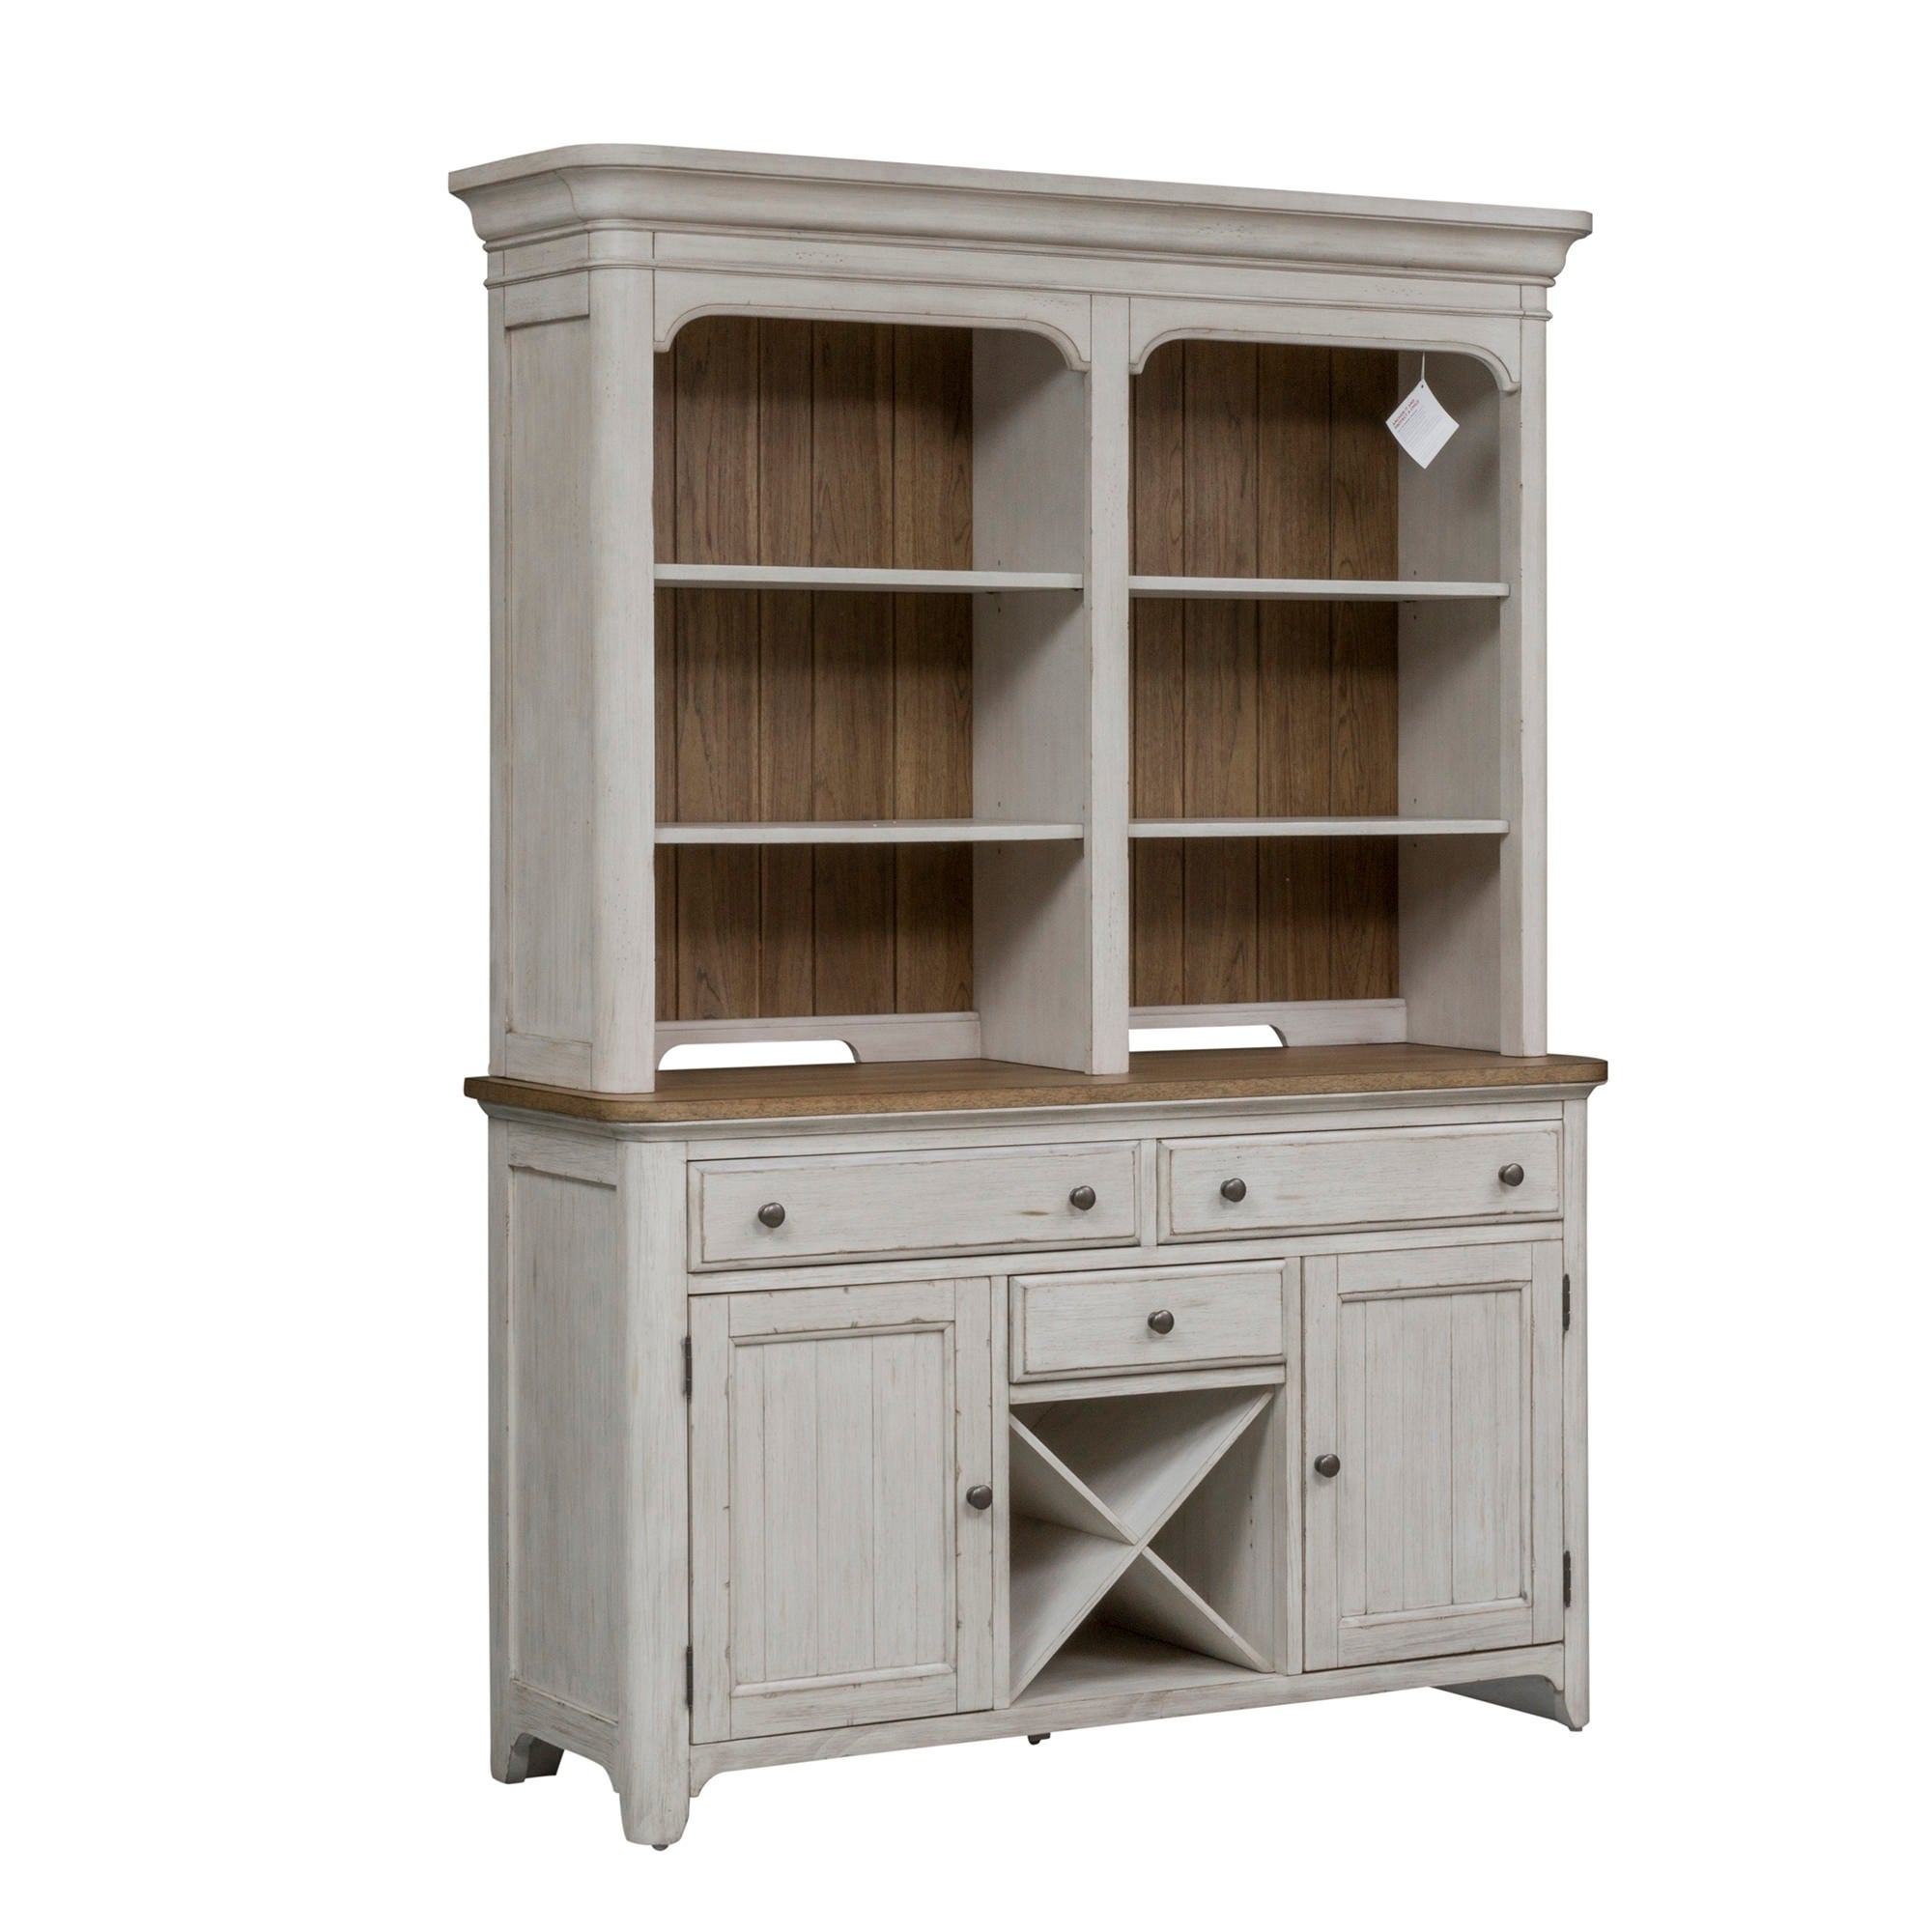 hutch alabama antique furniture sale p circa